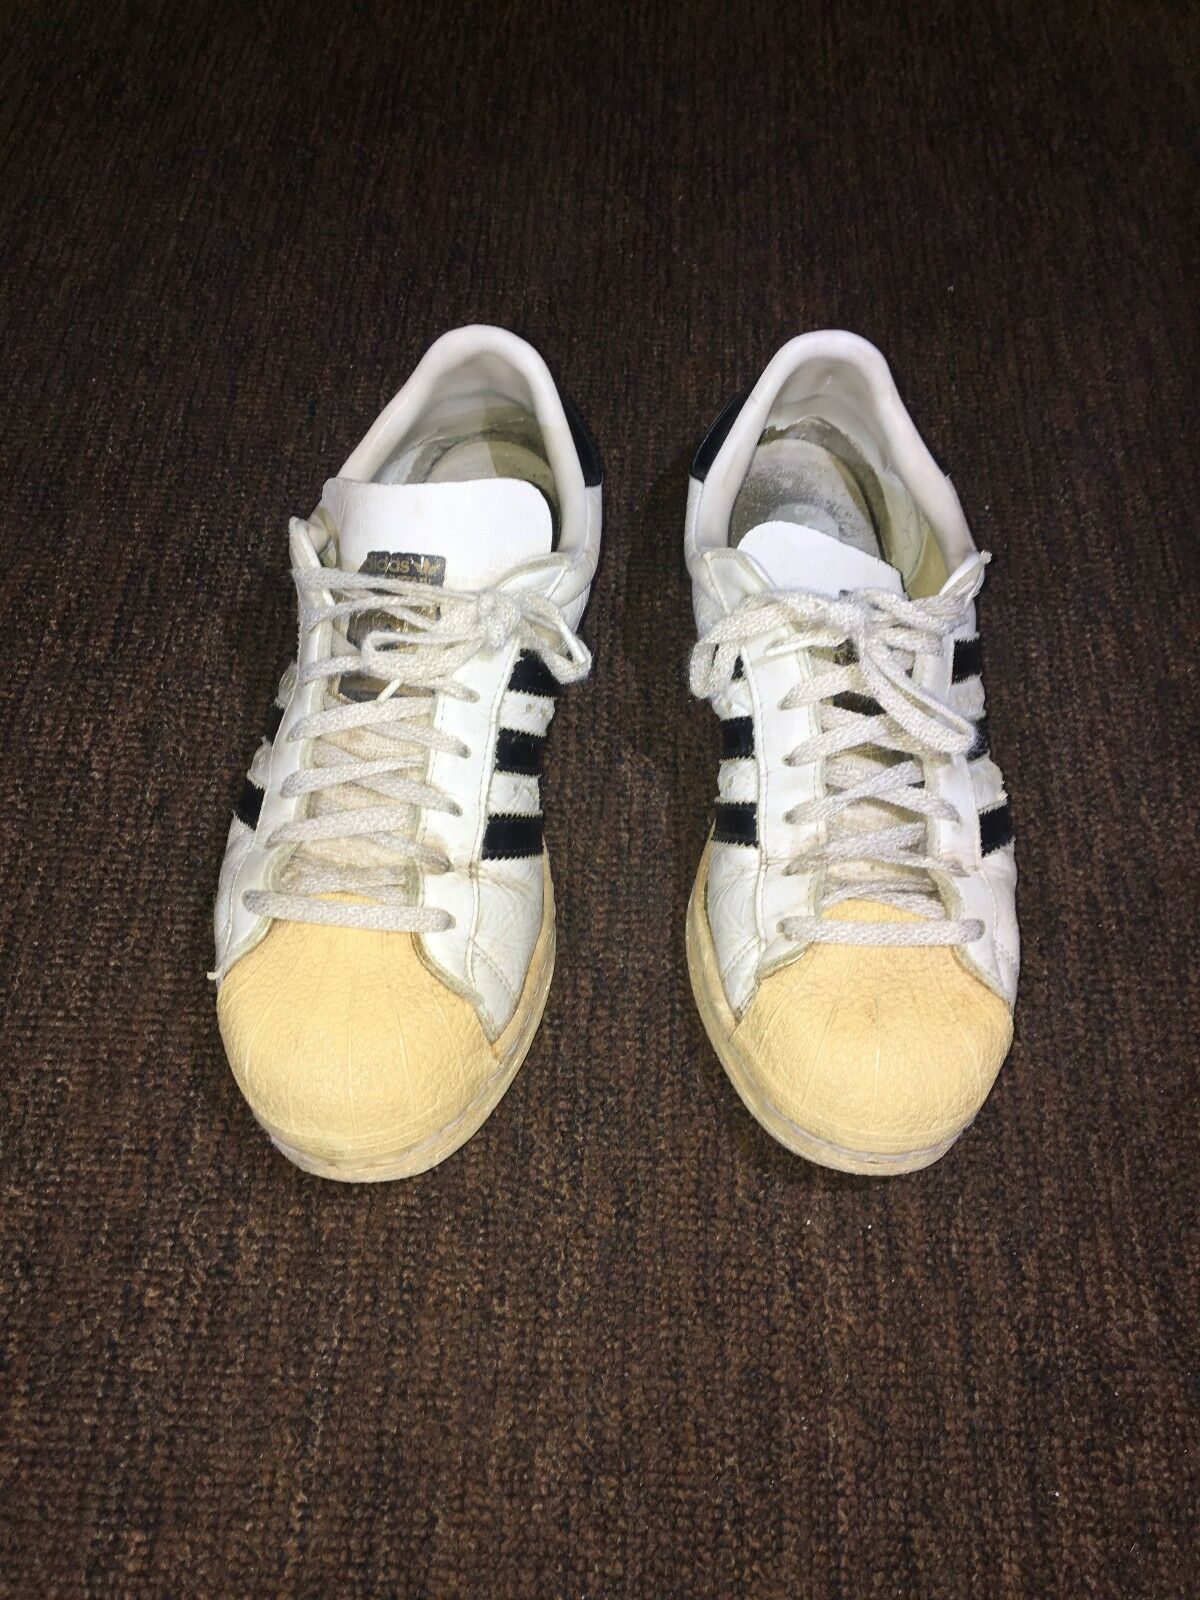 Vintage 1960s Adidas Superstar white sneakers - very rare find